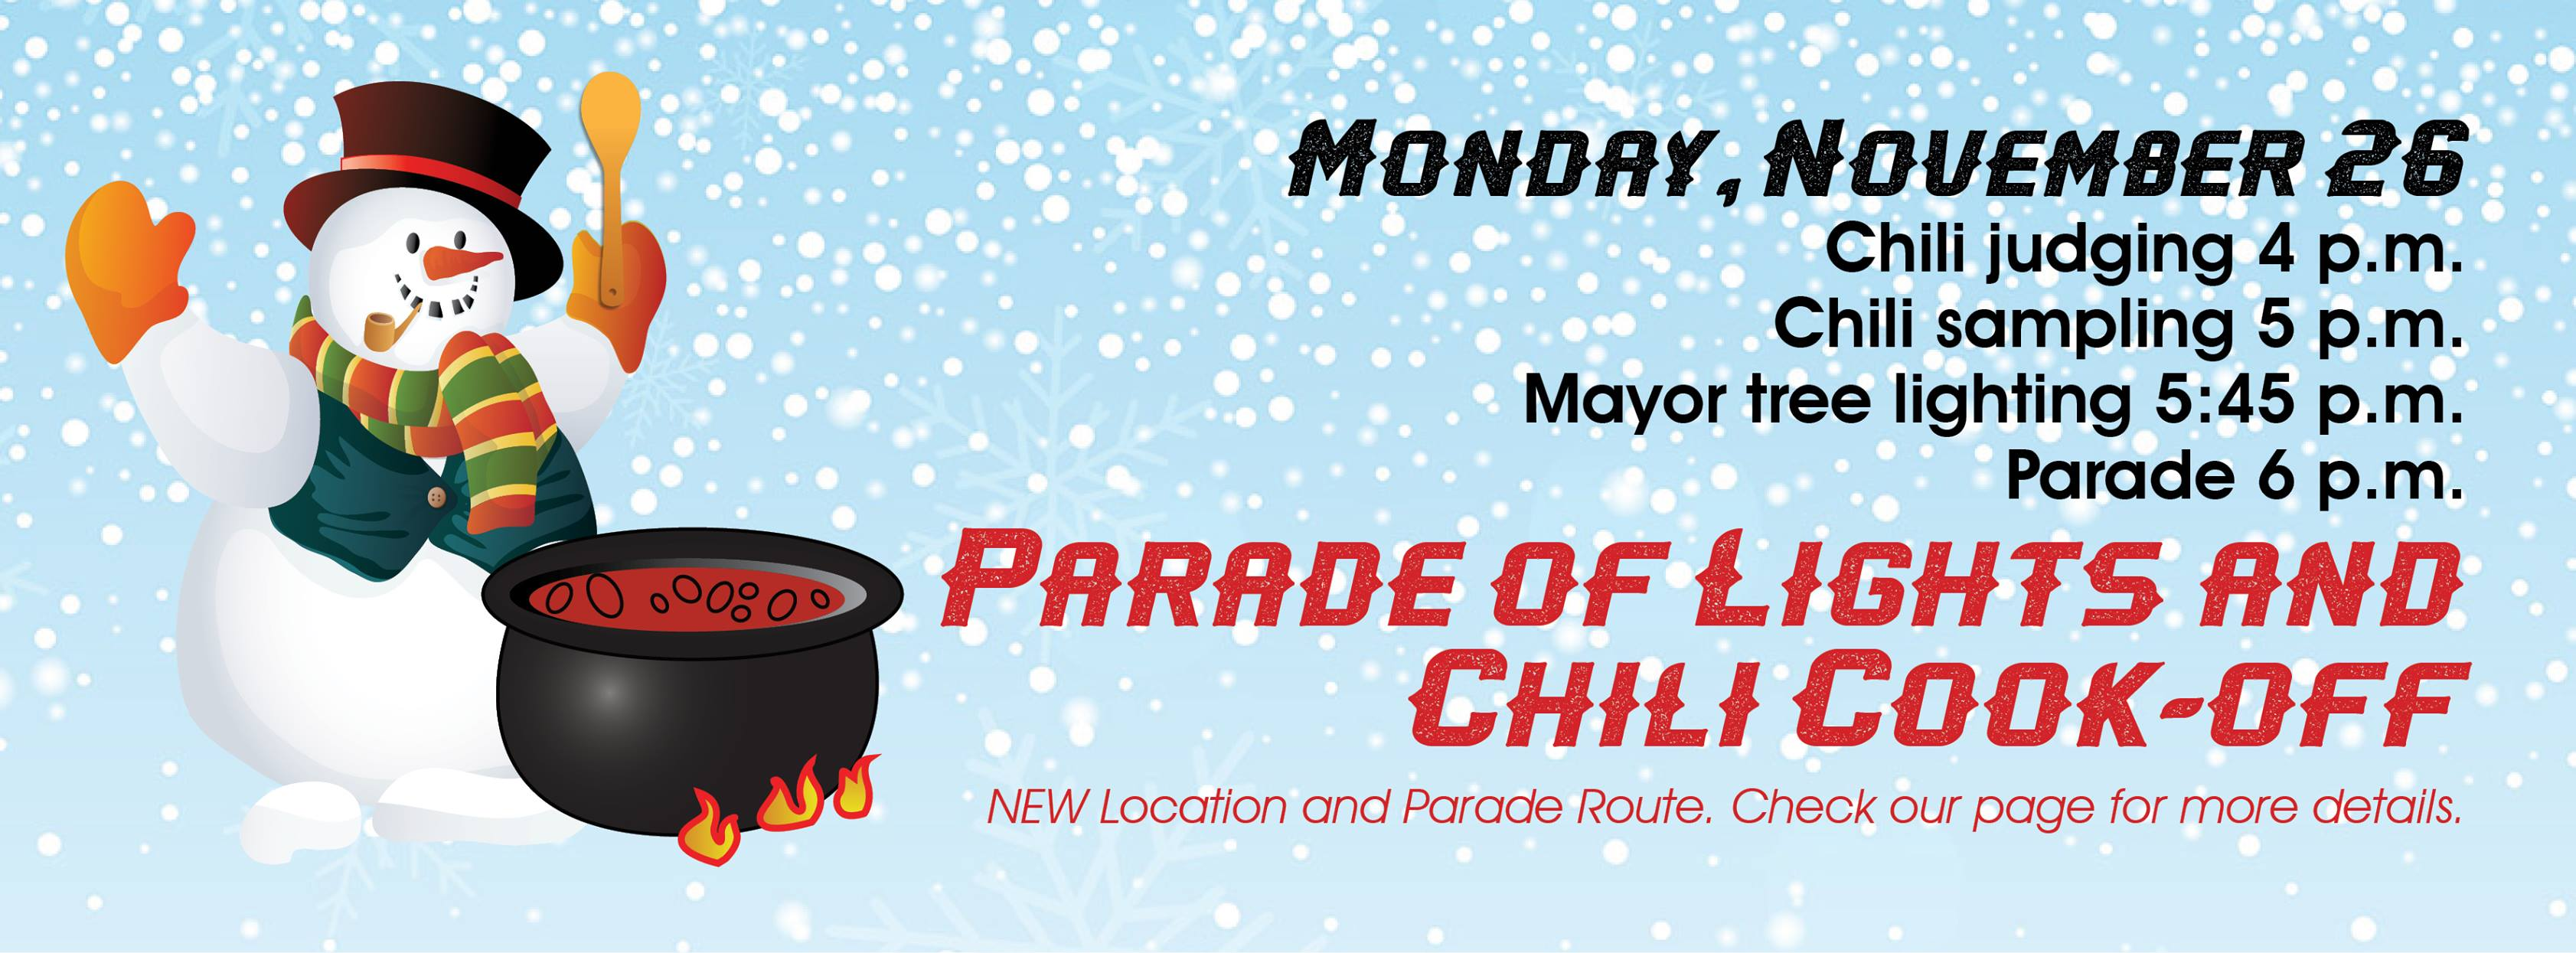 Parade of Lights and Chili Cook-Off